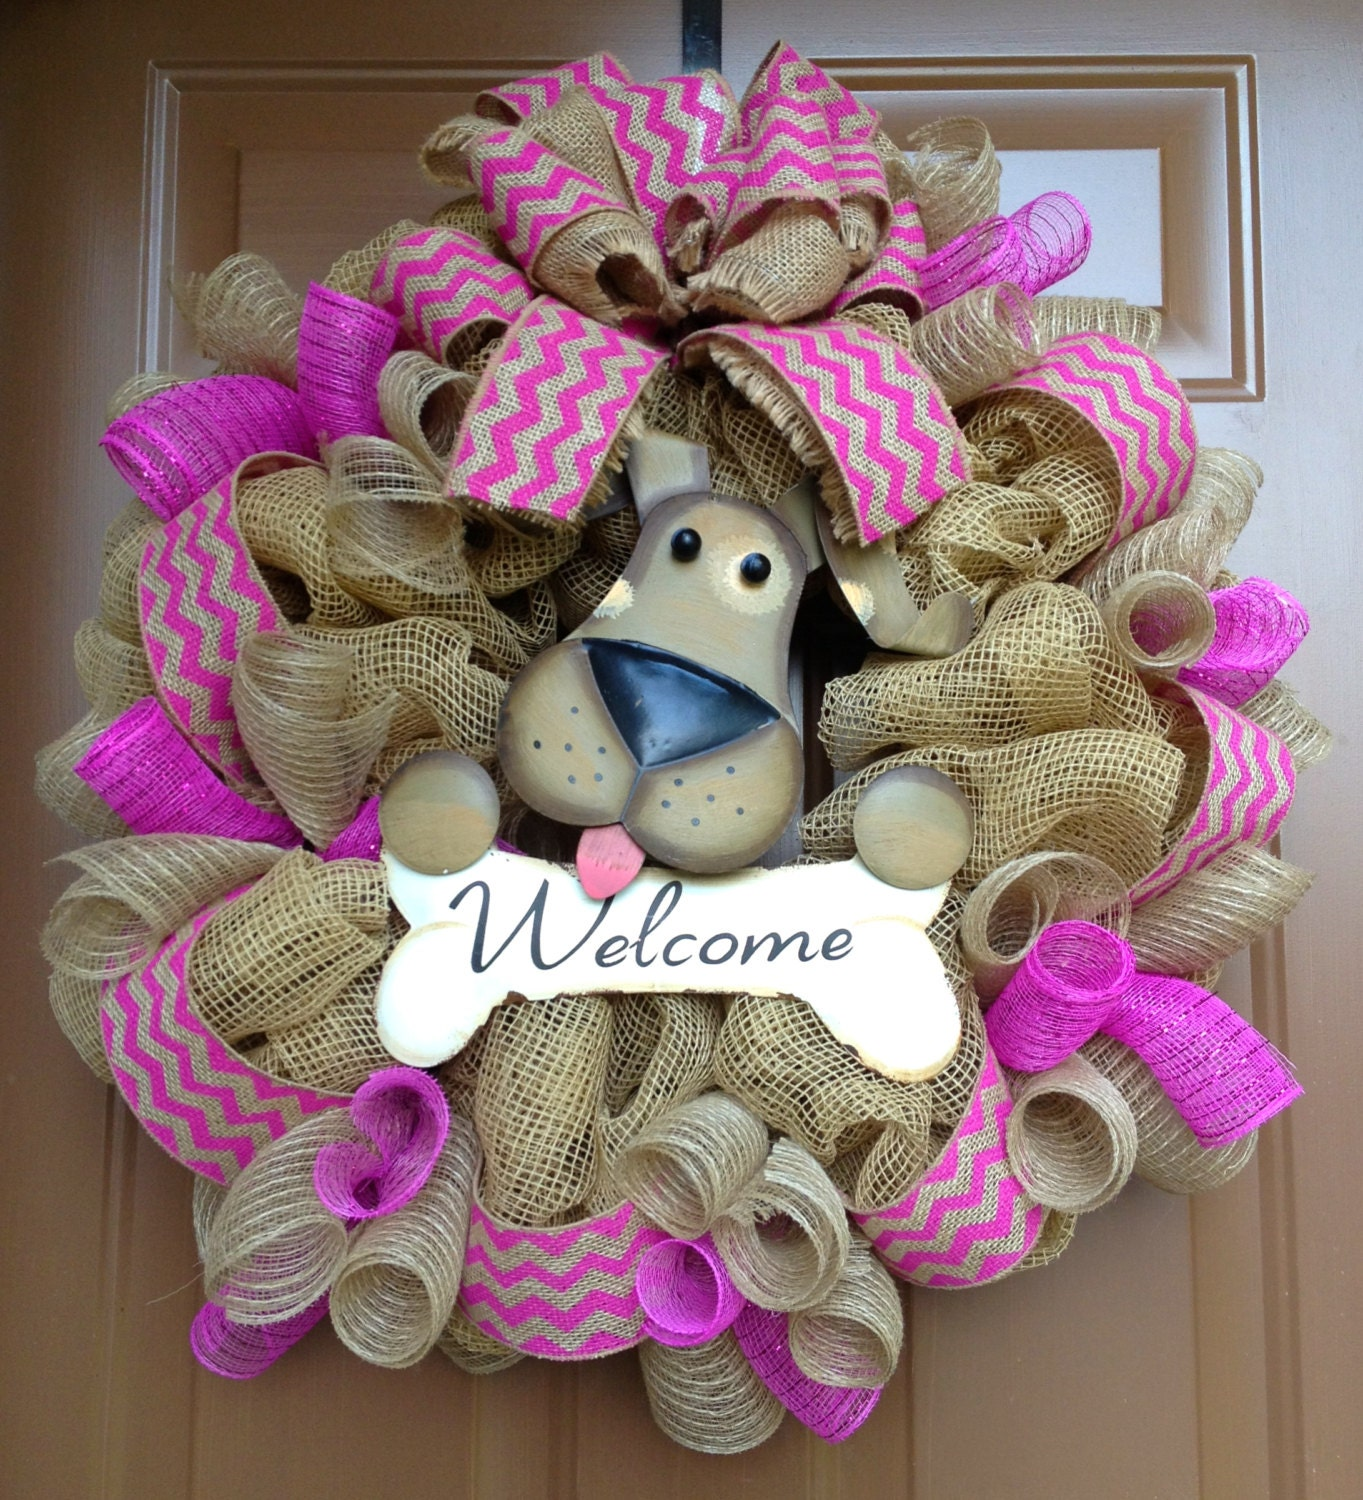 Crafts For Dog Lovers: Welcome Mesh Wreath With Dog